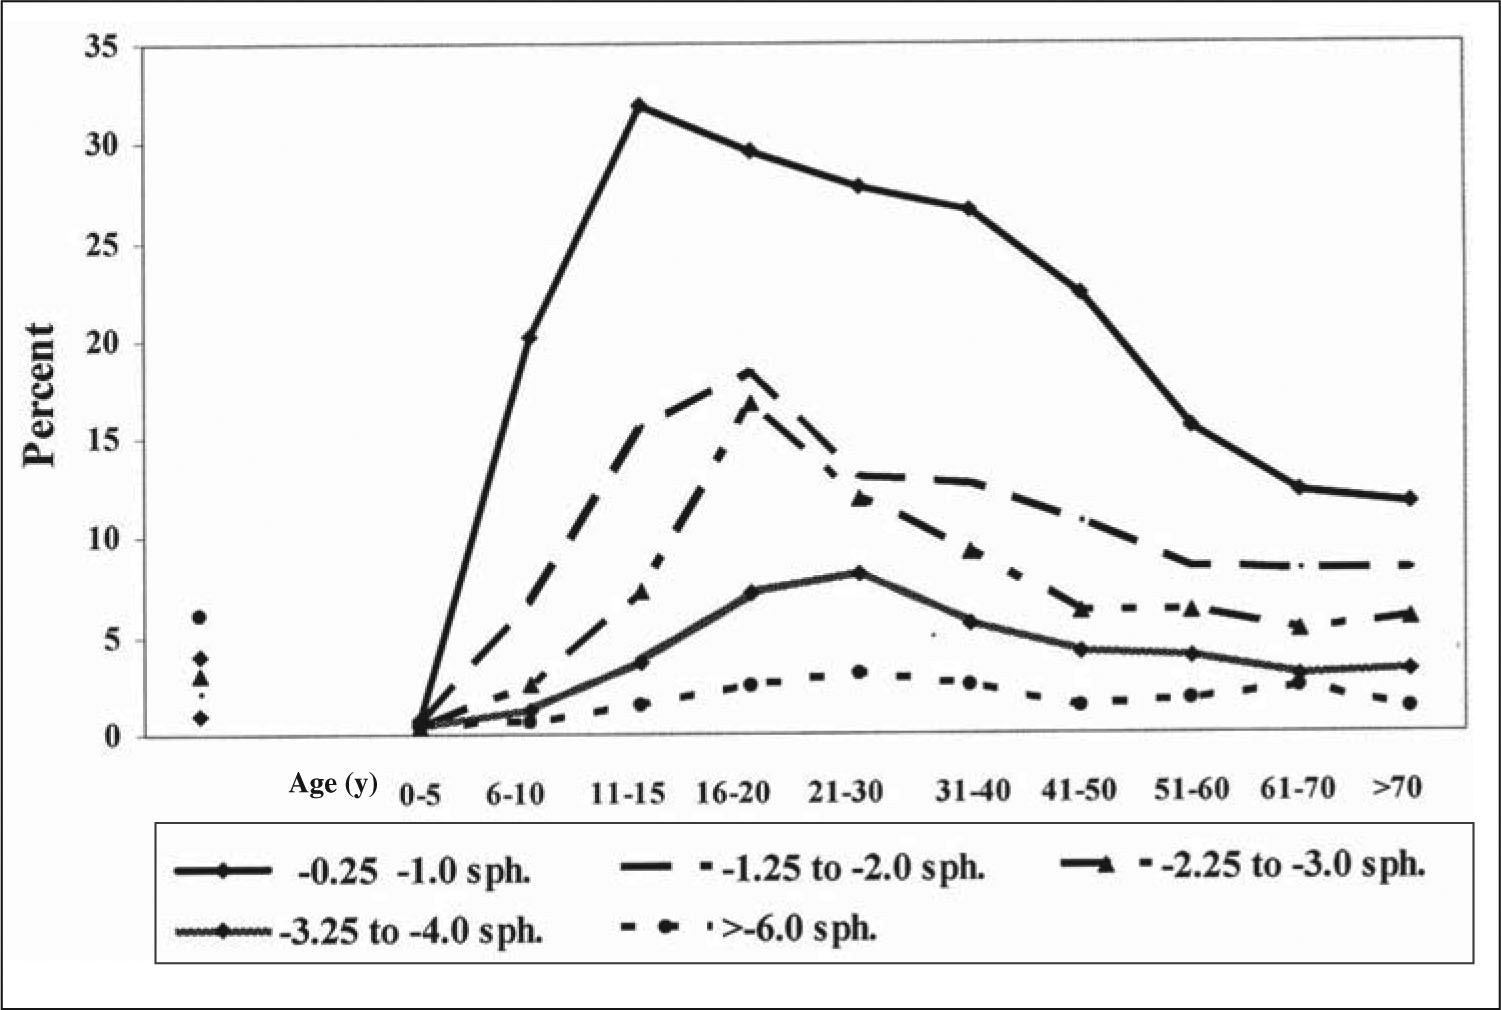 Prevalence of Myopia for Each Age Group and Refraction.